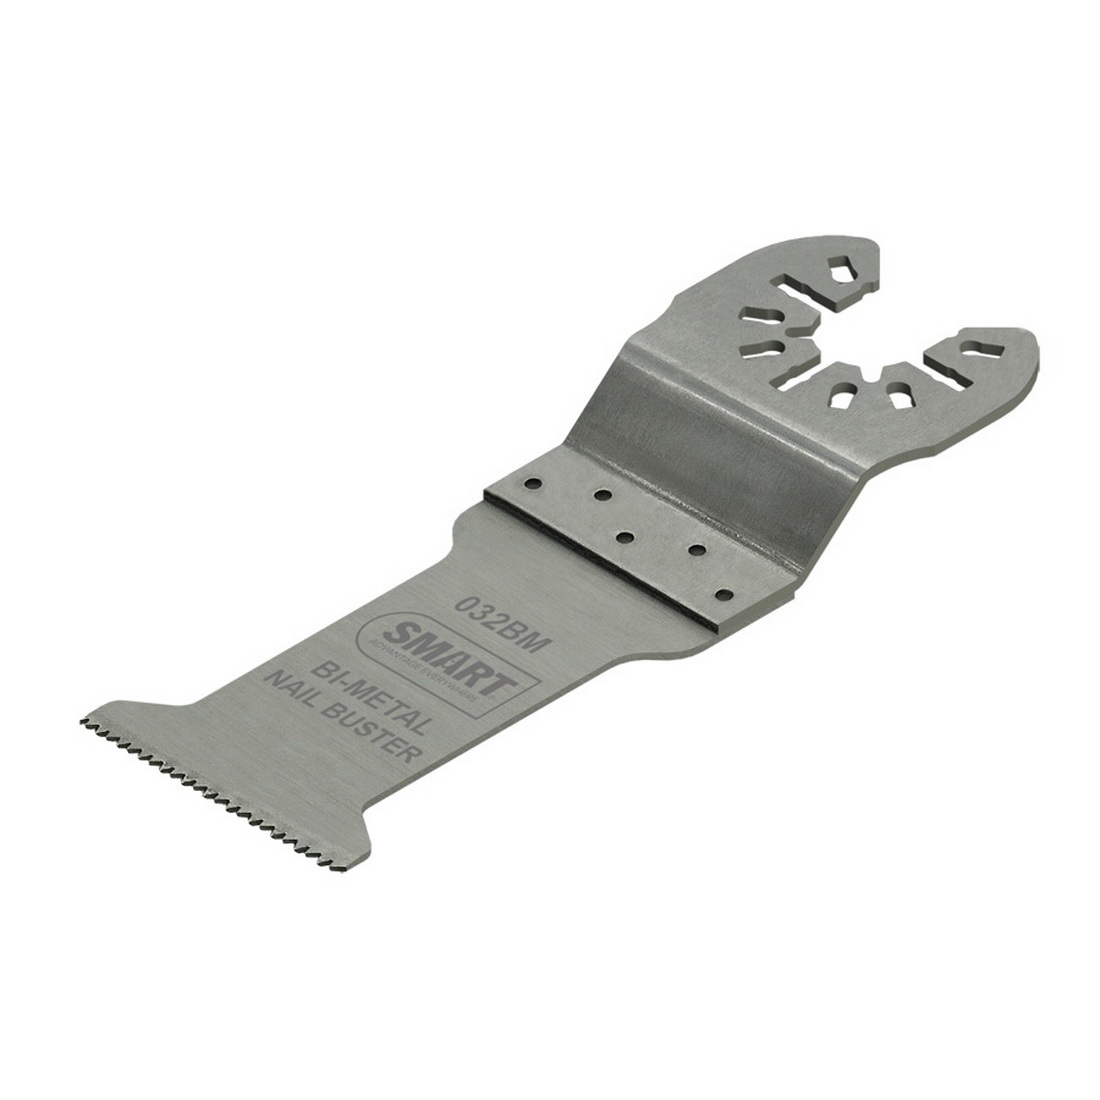 32mm Nail Buster Multi Tool Blade Bi-Metal 3 pack